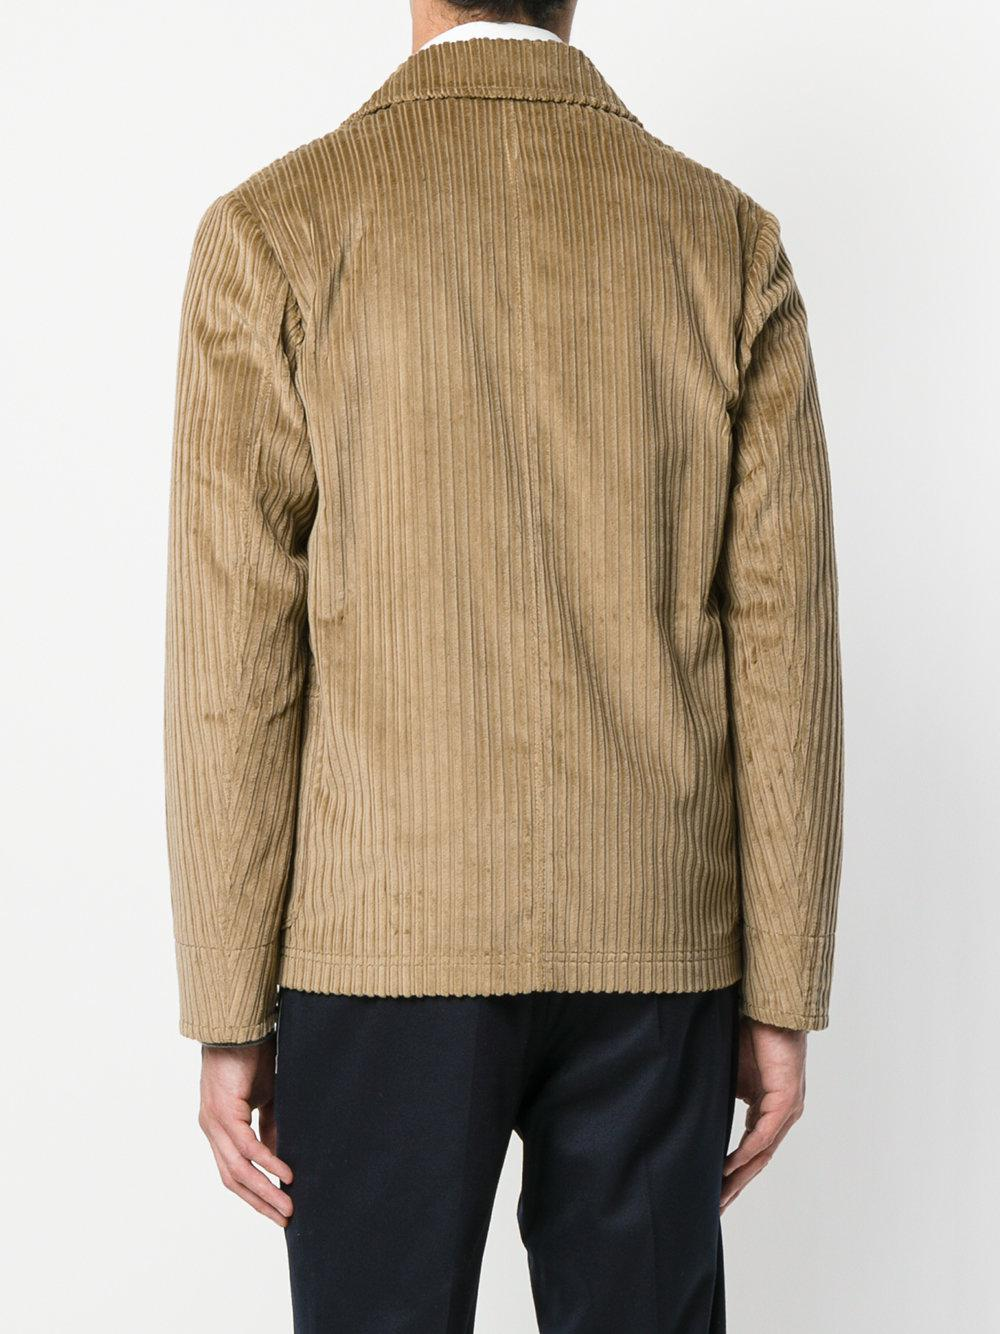 The Gigi Corduroy Jacket in Brown for Men